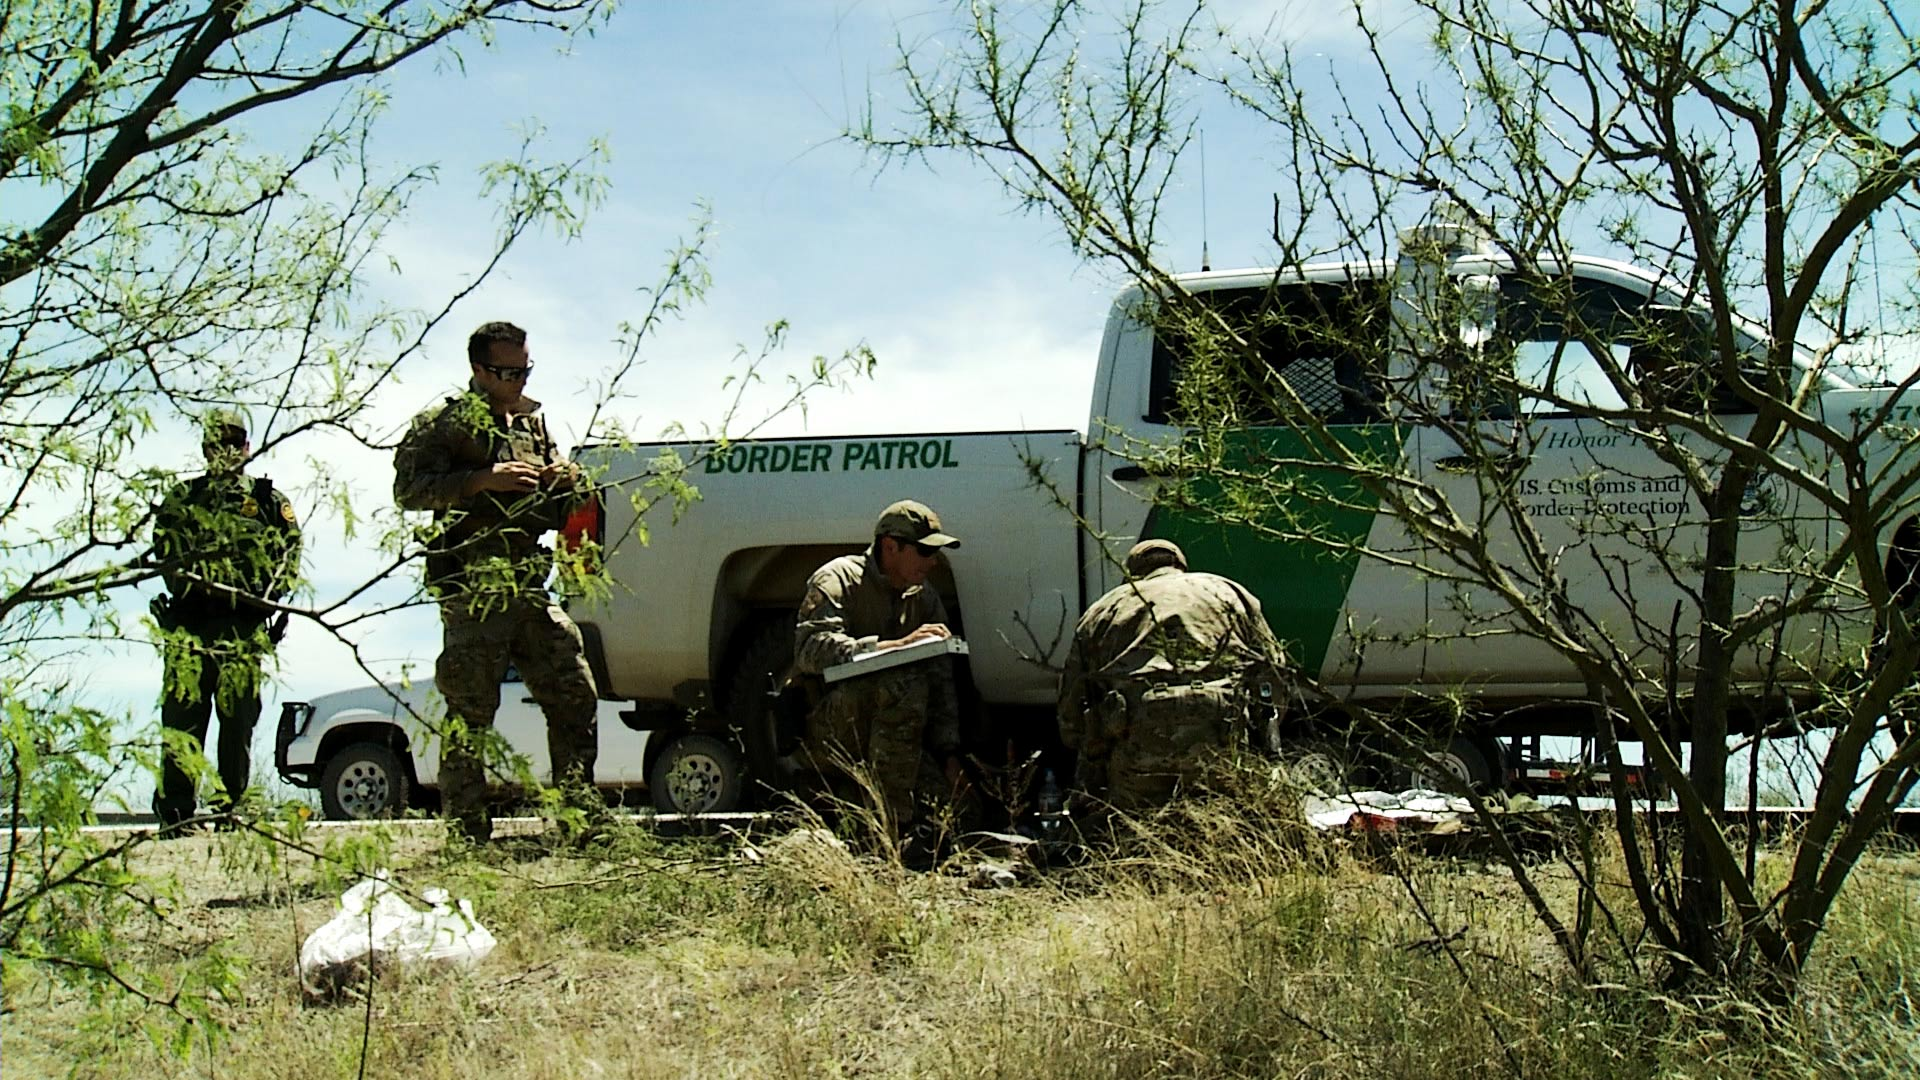 Agents with the Border Patrol Search, Trauma and Rescue team (BORSTAR) provide first aid to a man (not pictured) who flagged down a car for help off a highway in Pima County on April 9, 2019. The man told agents he was from Guatemala and had been lost the desert for several days.